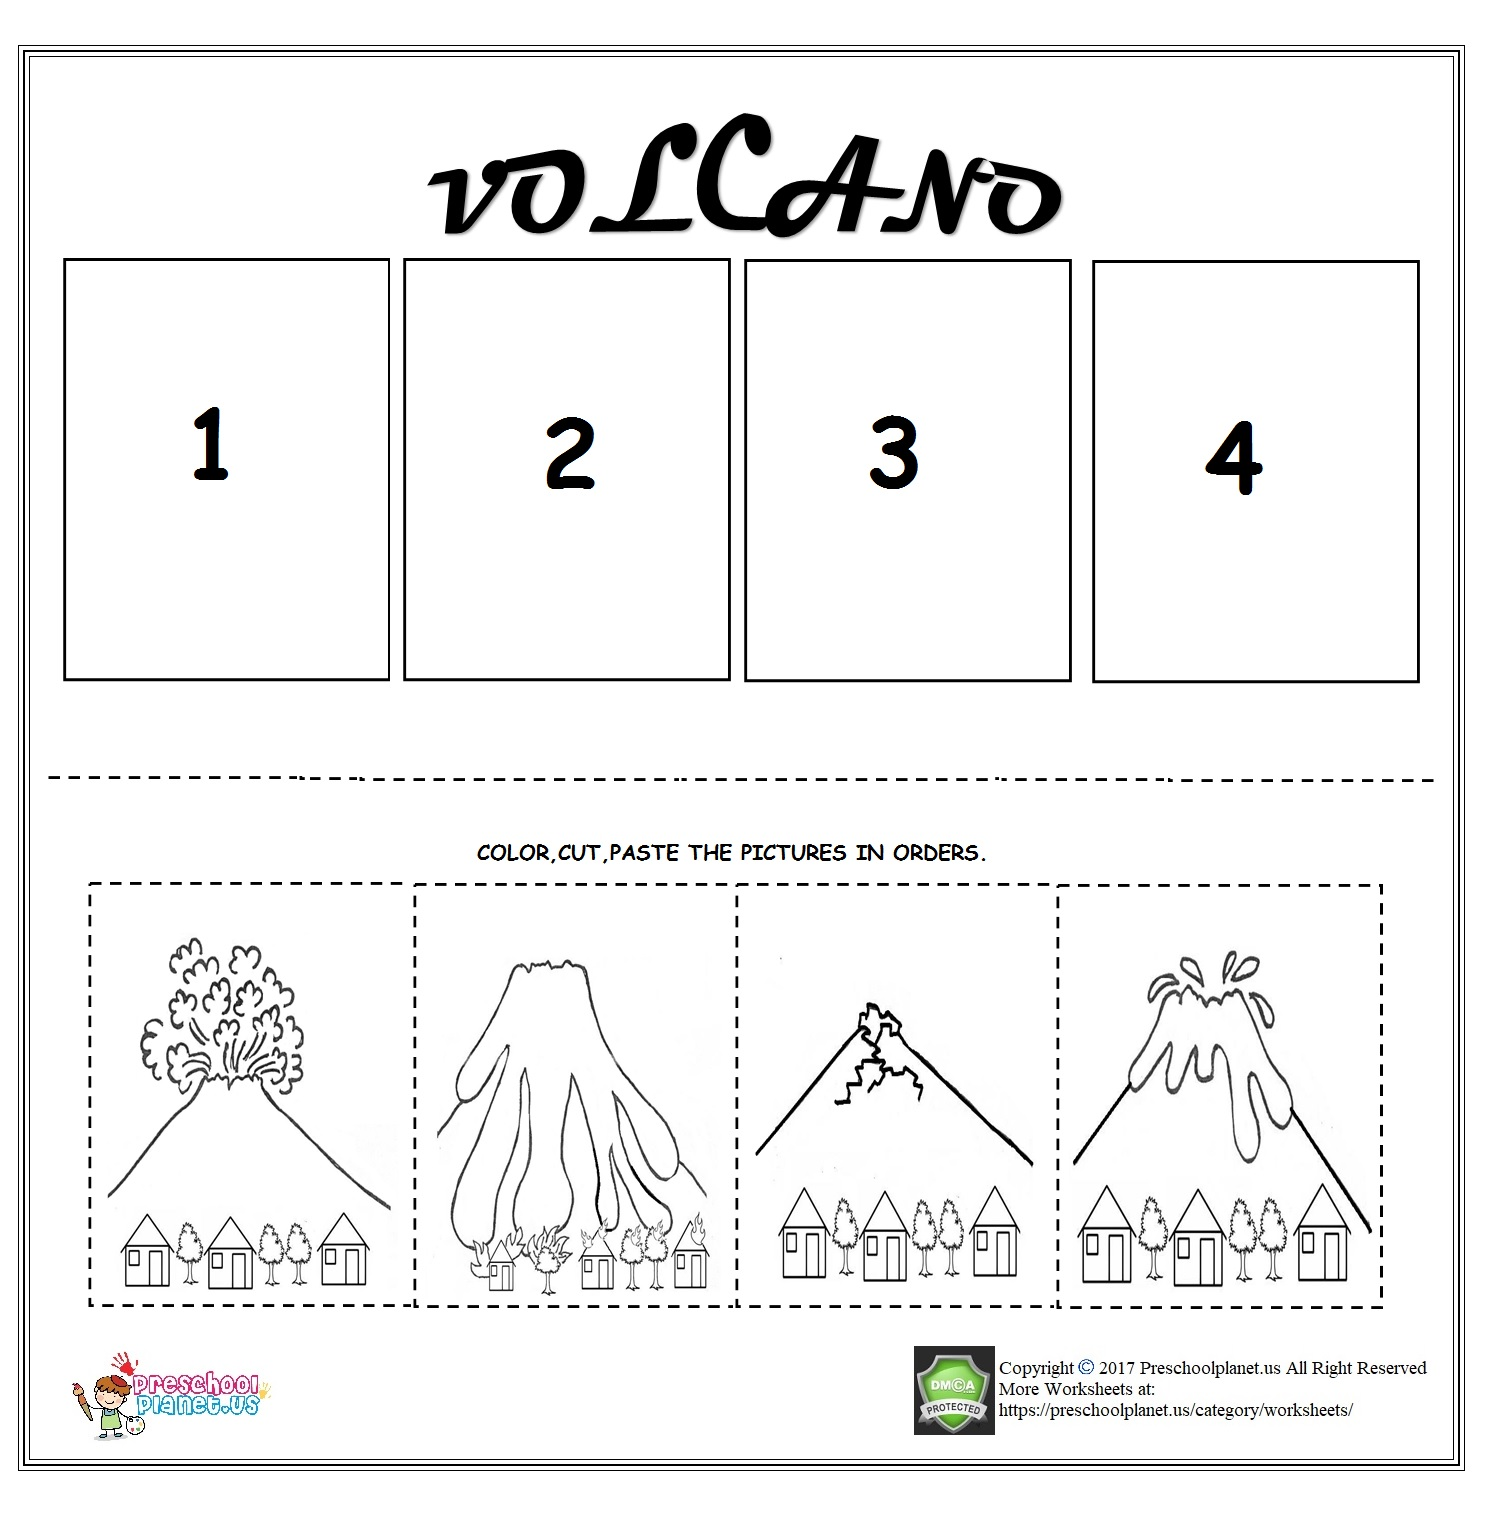 Volcano Worksheets Grade 3 | Printable Worksheets and ...